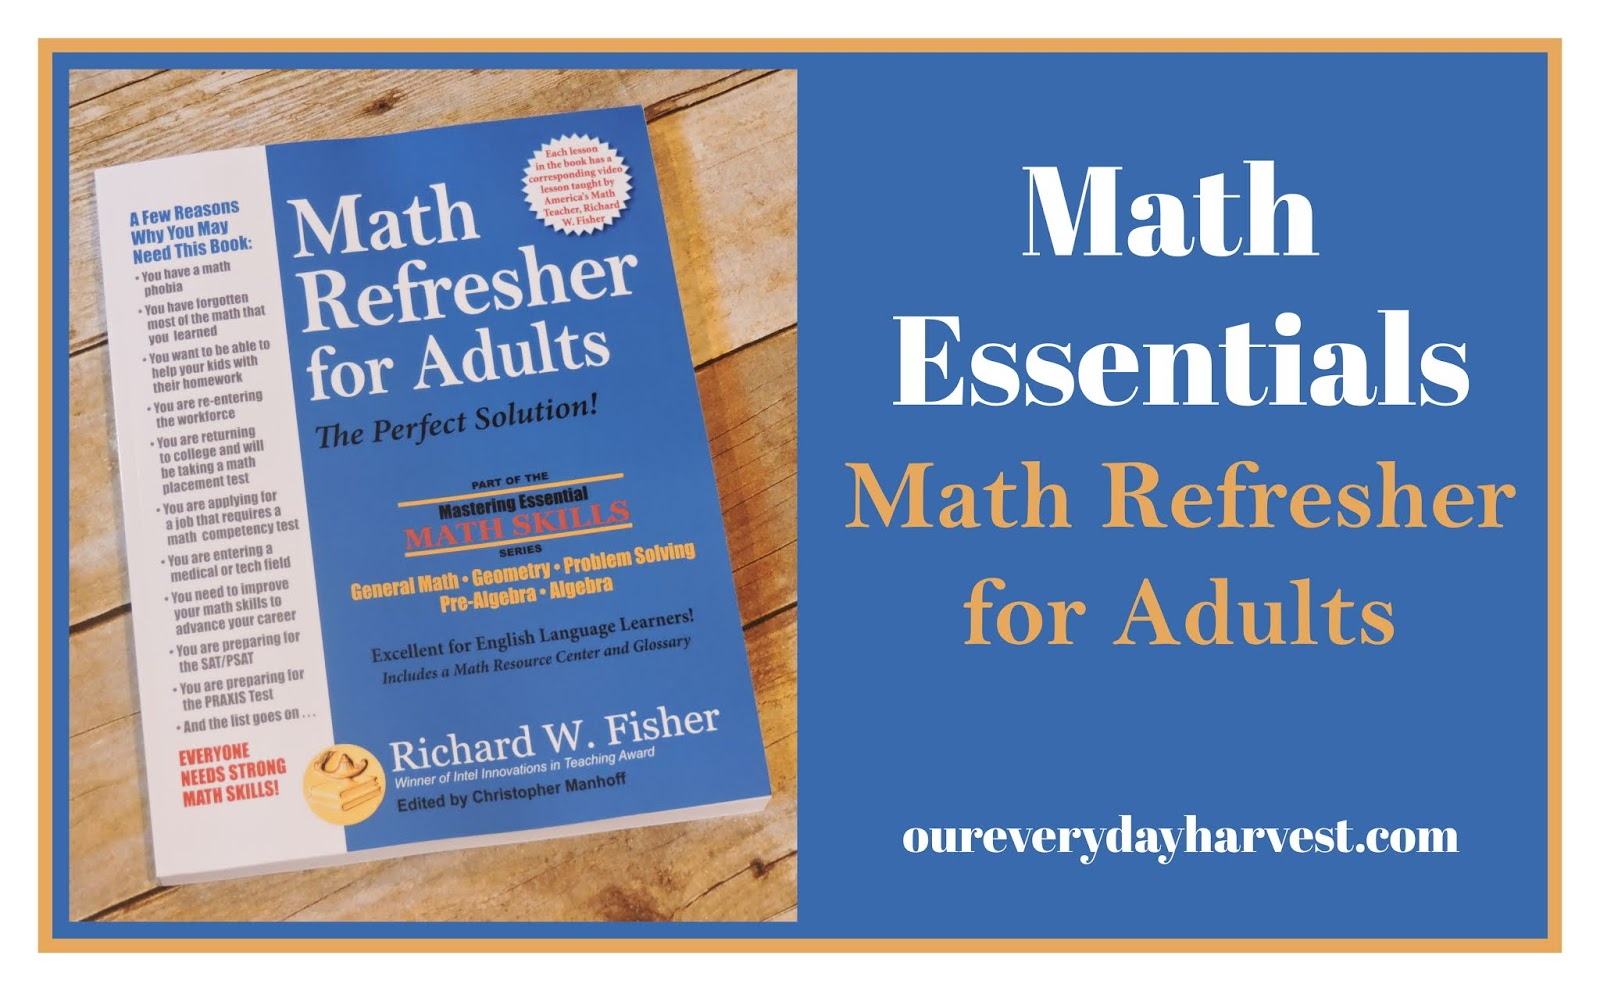 Math Essentials Math Refresher For Adults Review